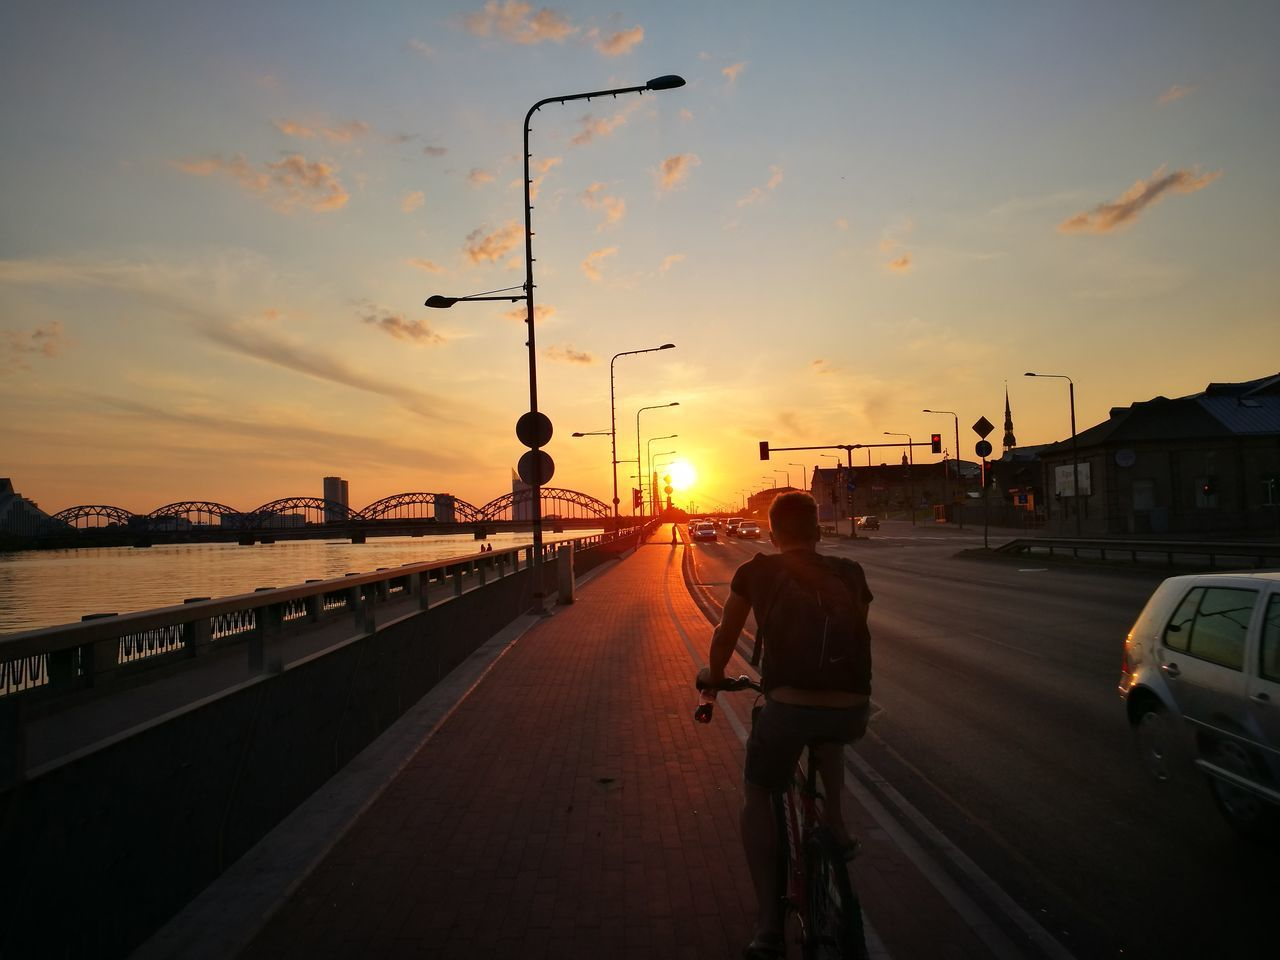 sunset, transportation, sky, land vehicle, mode of transport, cloud - sky, road, built structure, architecture, car, real people, bridge - man made structure, street light, street, city, bicycle, outdoors, full length, water, nature, men, building exterior, one person, day, people